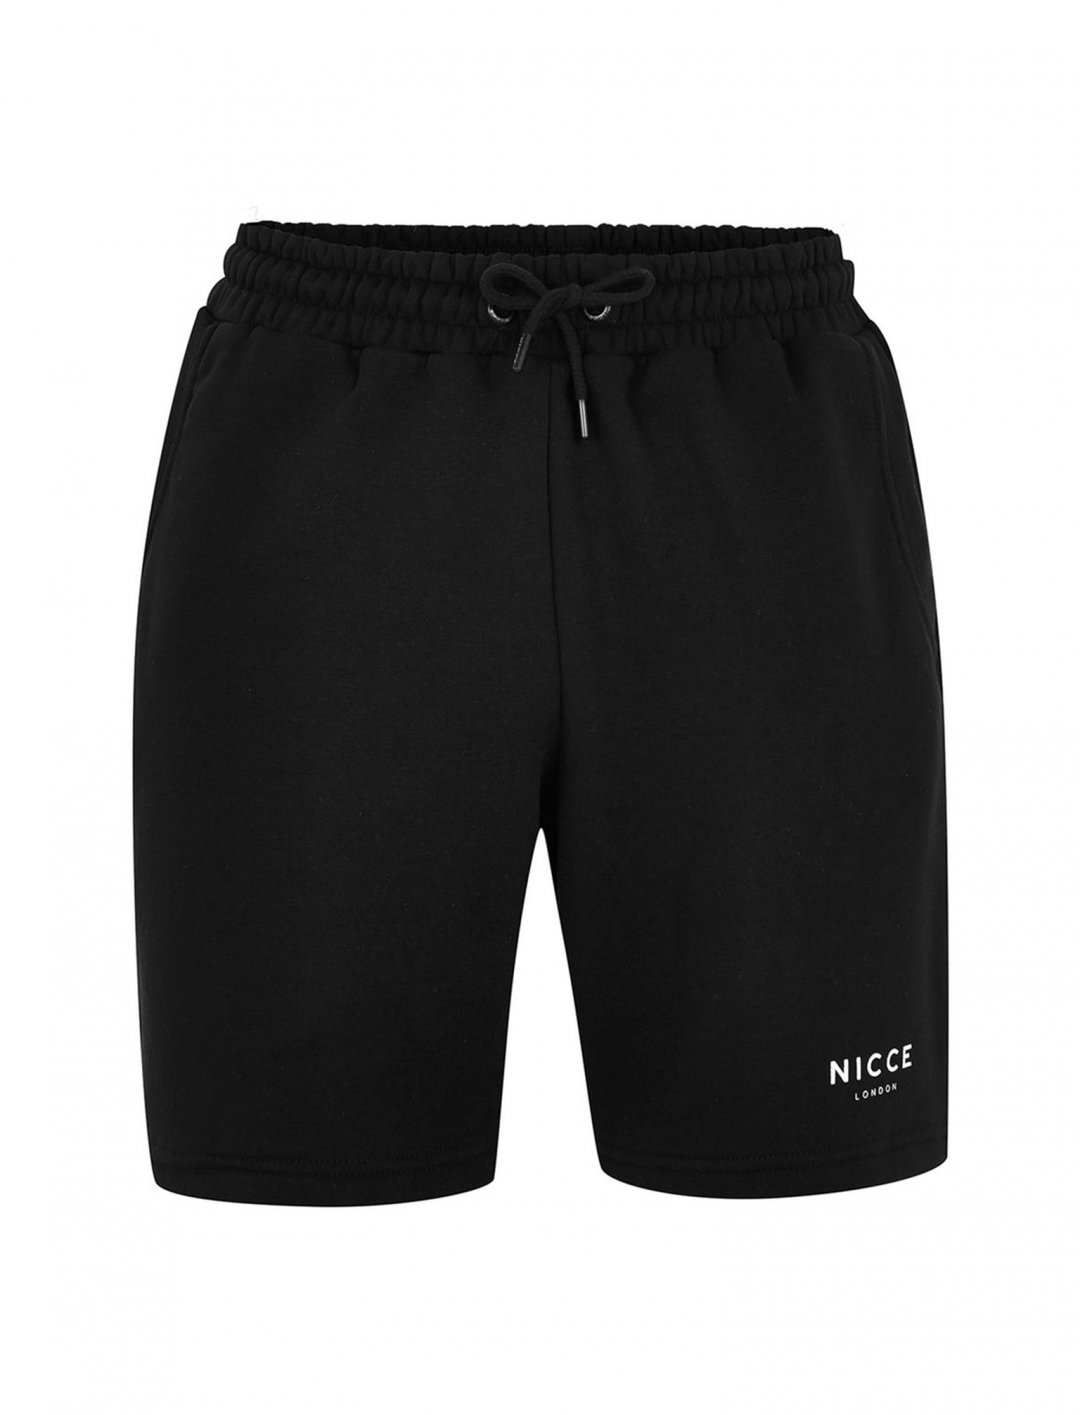 """Nicce Black Jogging Shorts {""""id"""":5,""""product_section_id"""":1,""""name"""":""""Clothing"""",""""order"""":5} Nicce"""